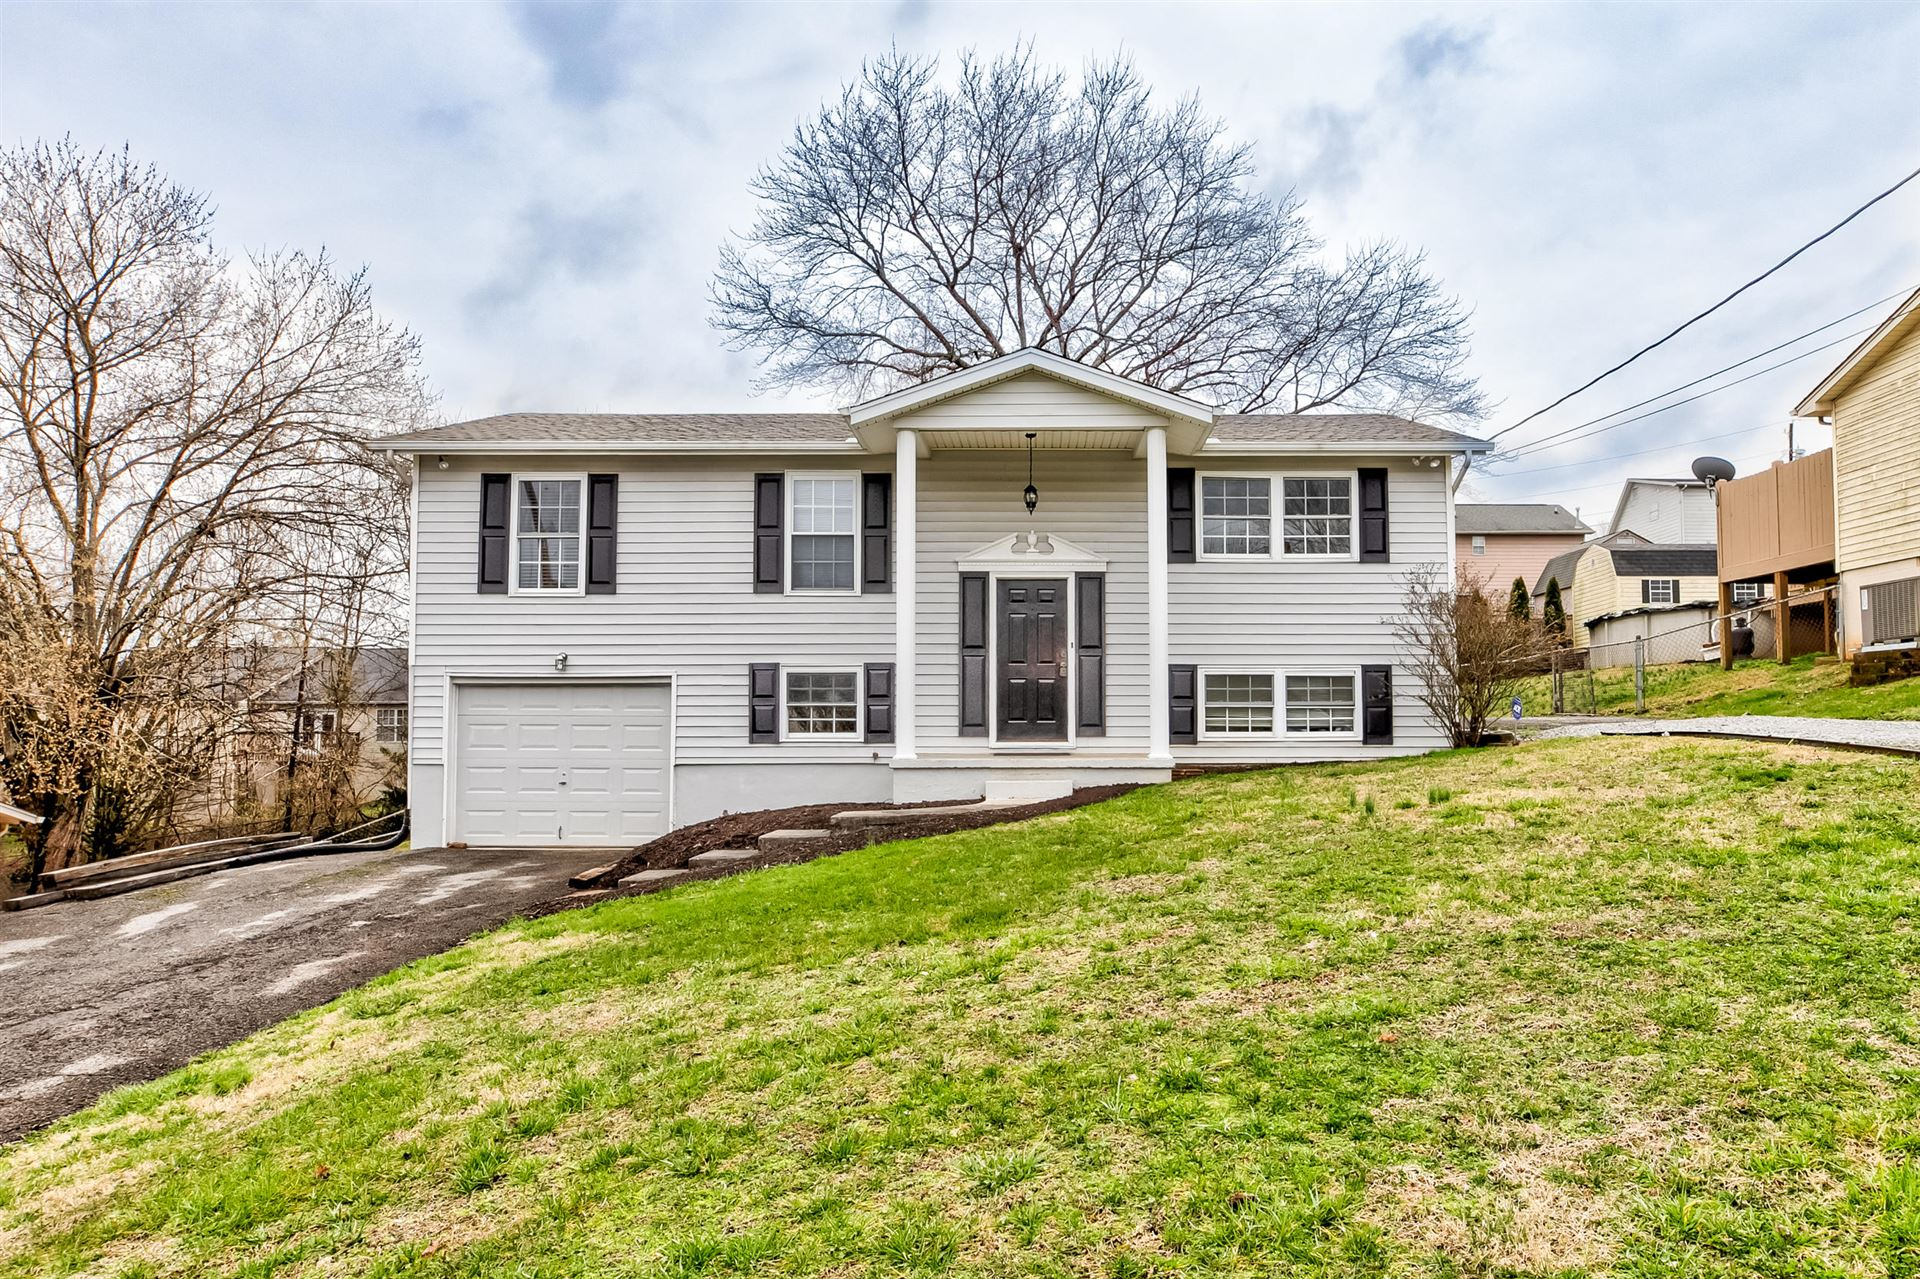 Photo of 3404 Tonya Drive, Powell, TN 37849 (MLS # 1108399)